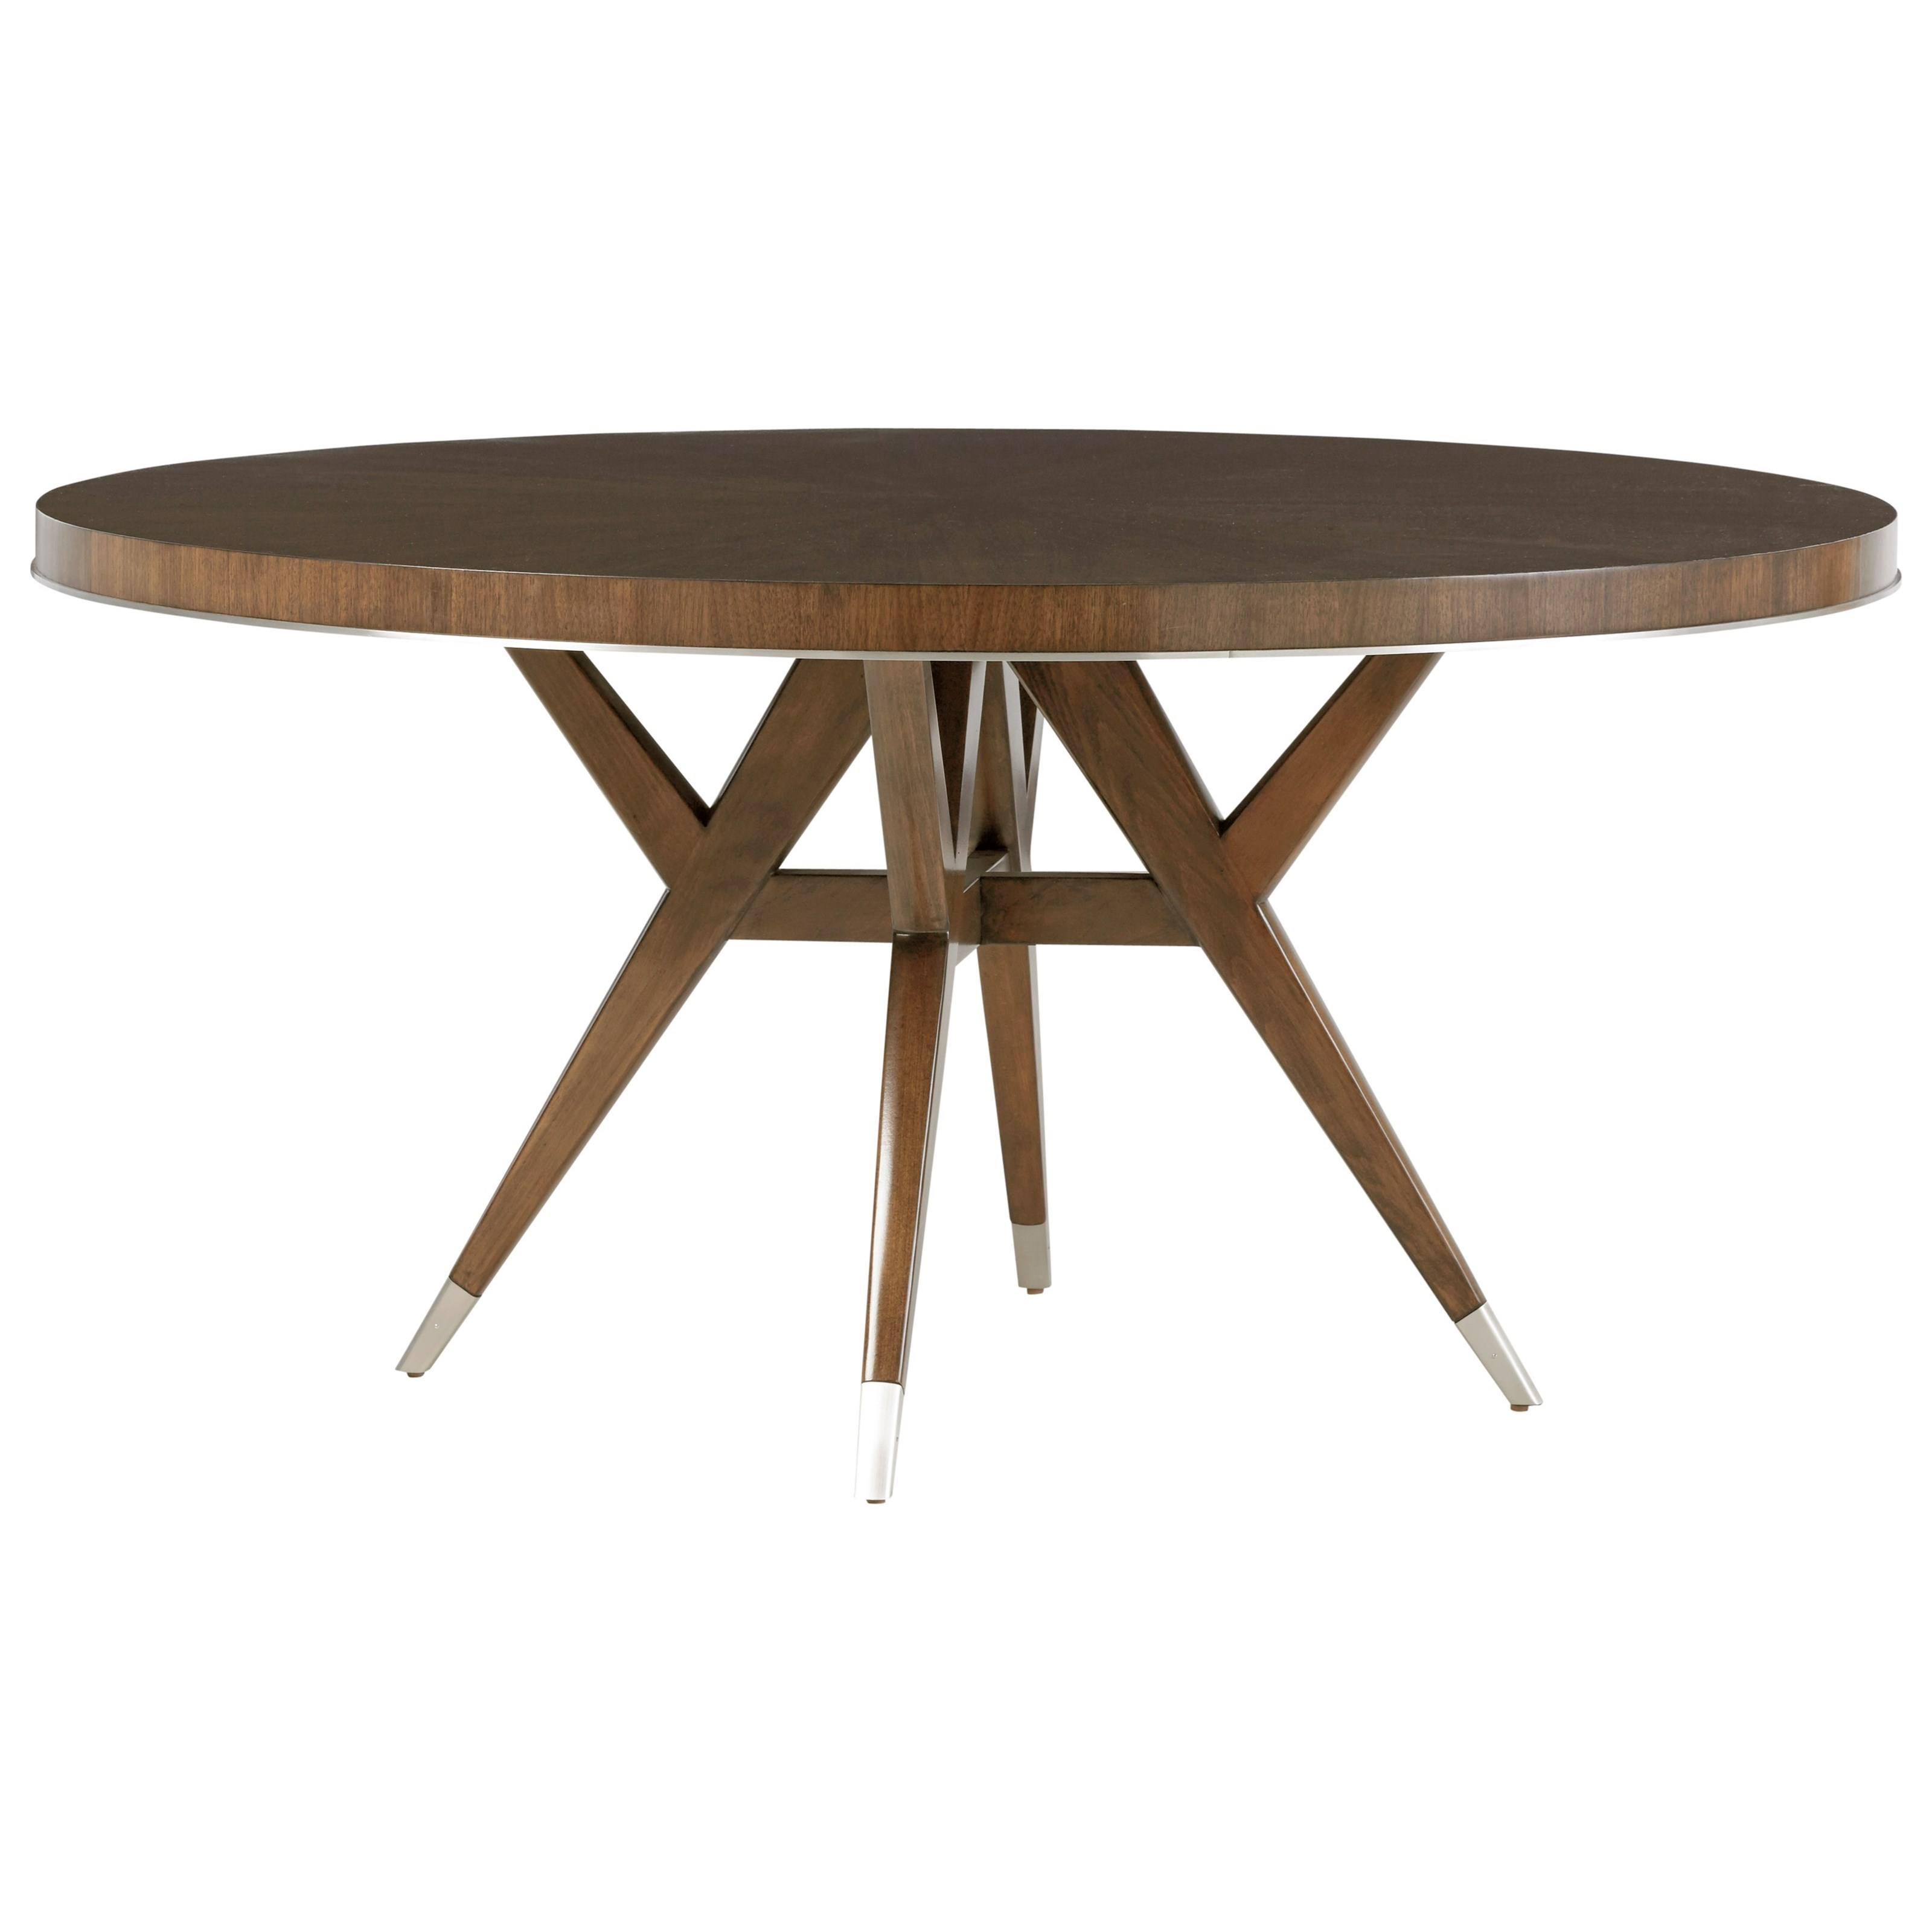 MacArthur Park Strathmore Round Dining Table by Lexington at Esprit Decor Home Furnishings